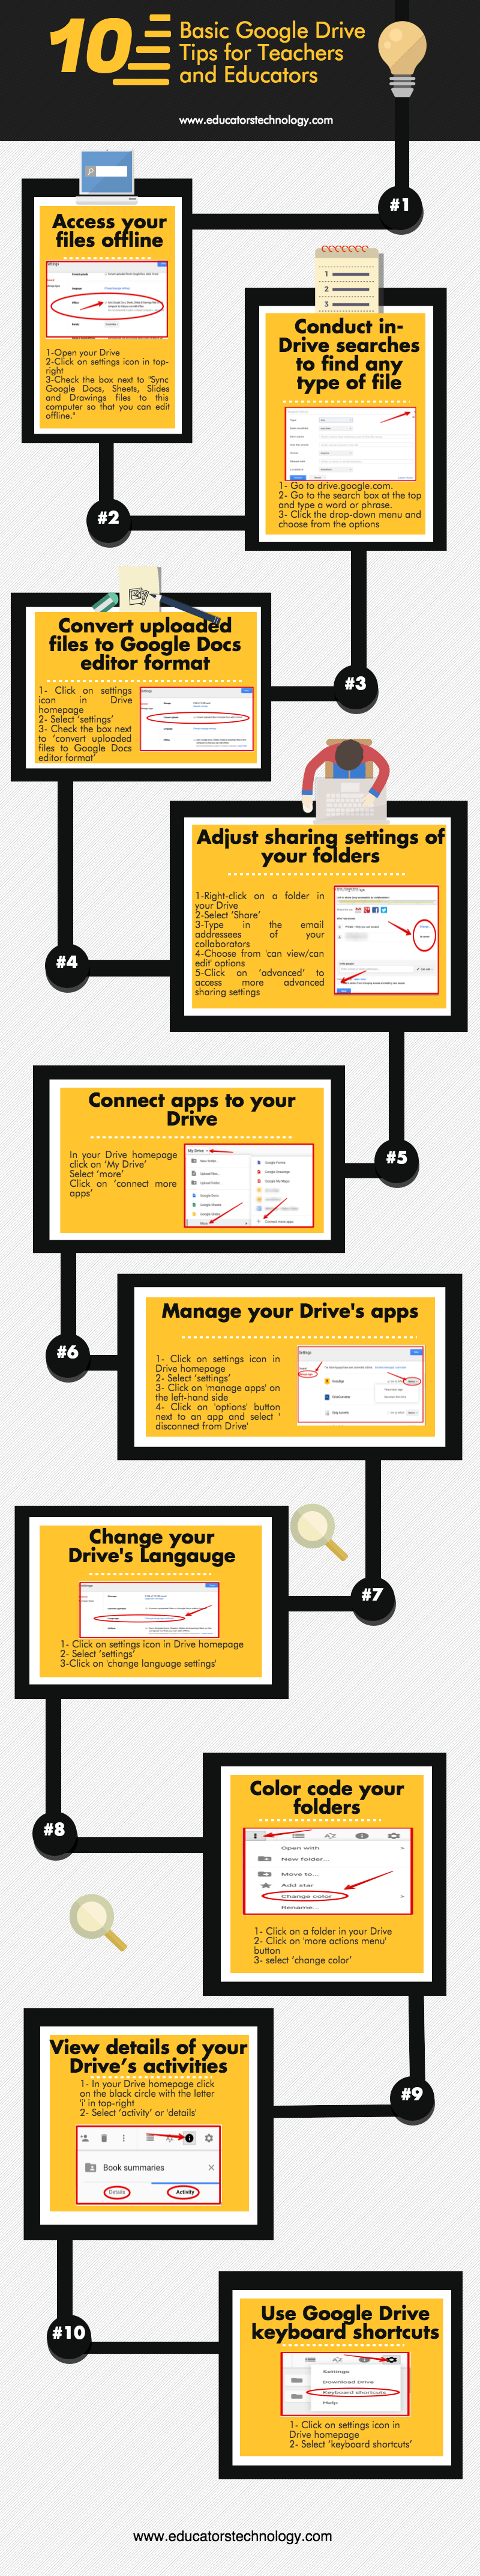 10 Google Drive Tips for Teachers Infographic